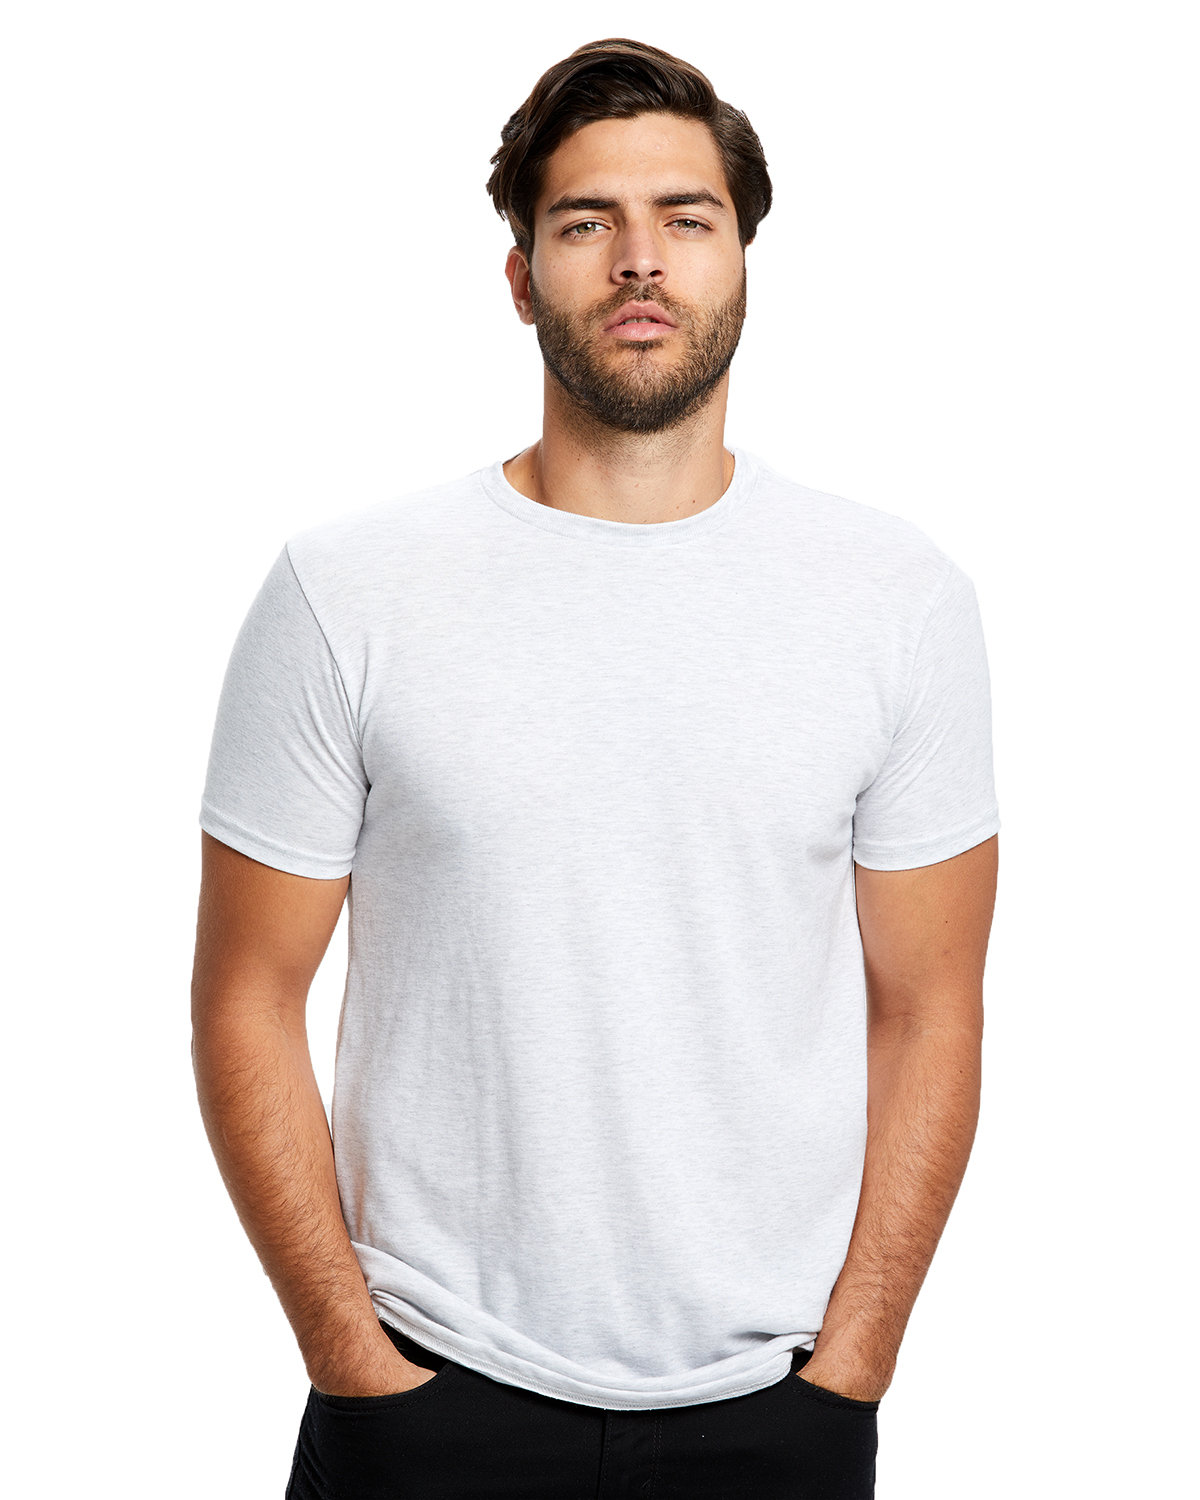 US Blanks Men's Short-Sleeve Made in USA Triblend T-Shirt ASH